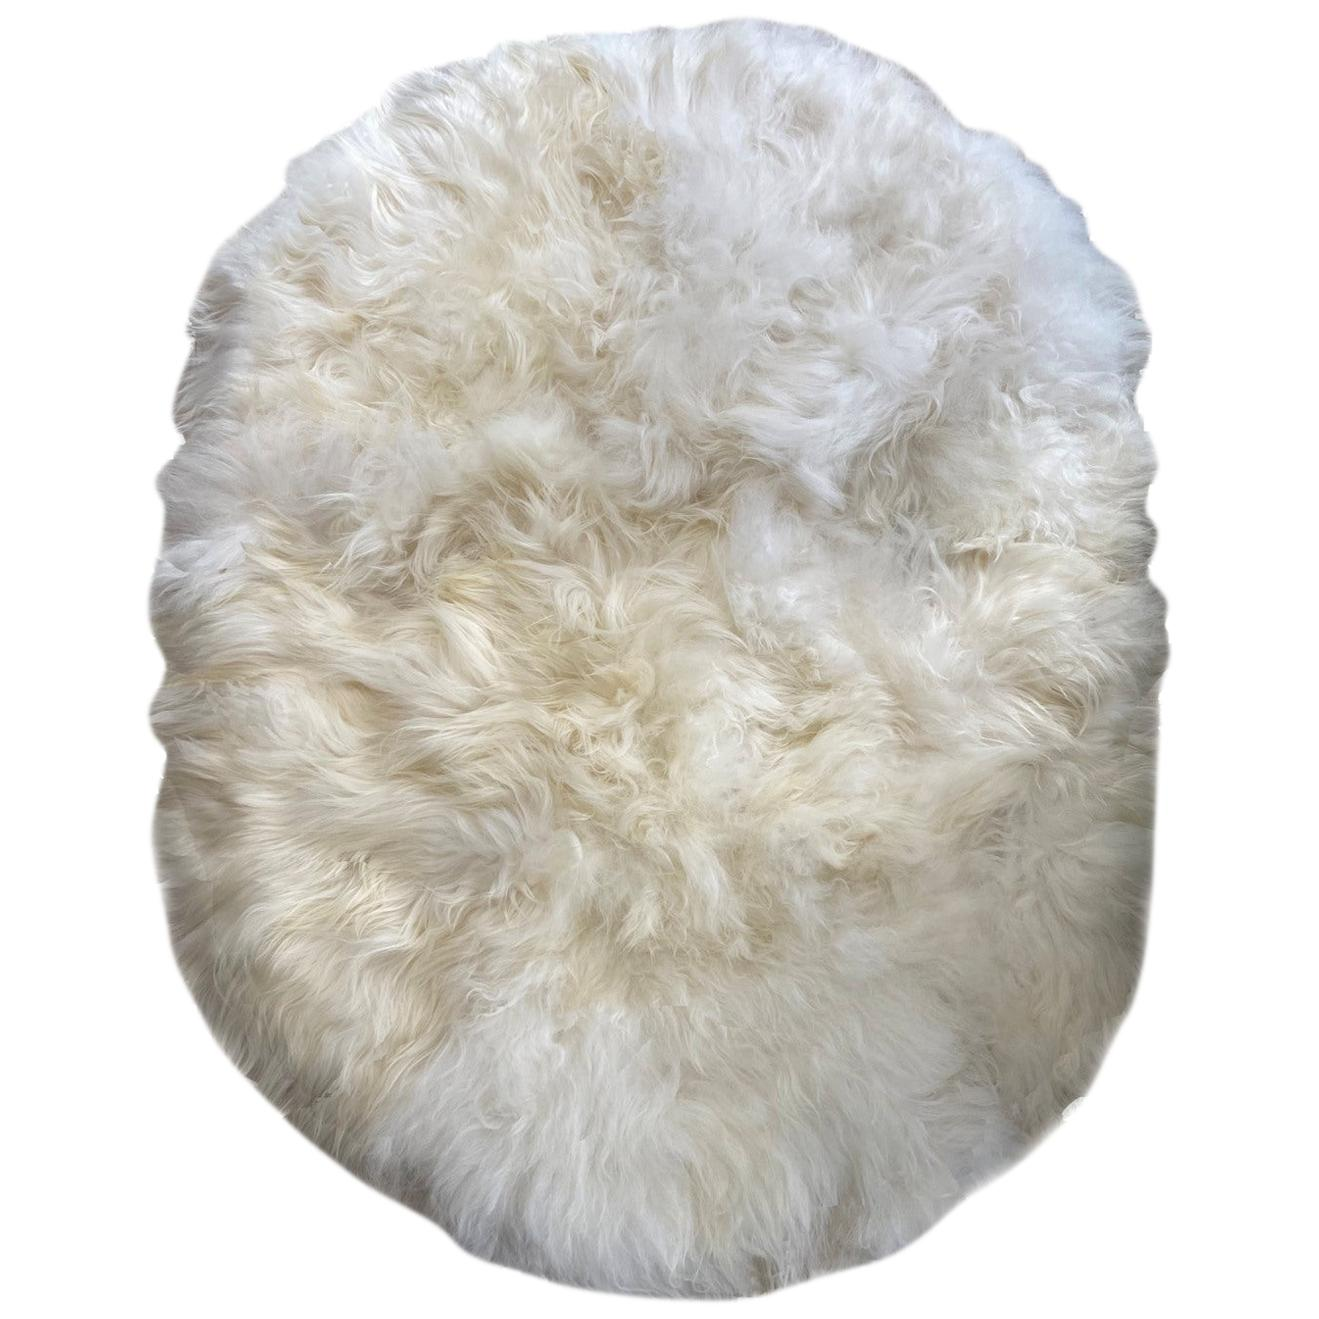 Shaggy Sheepskin Rug, Oval